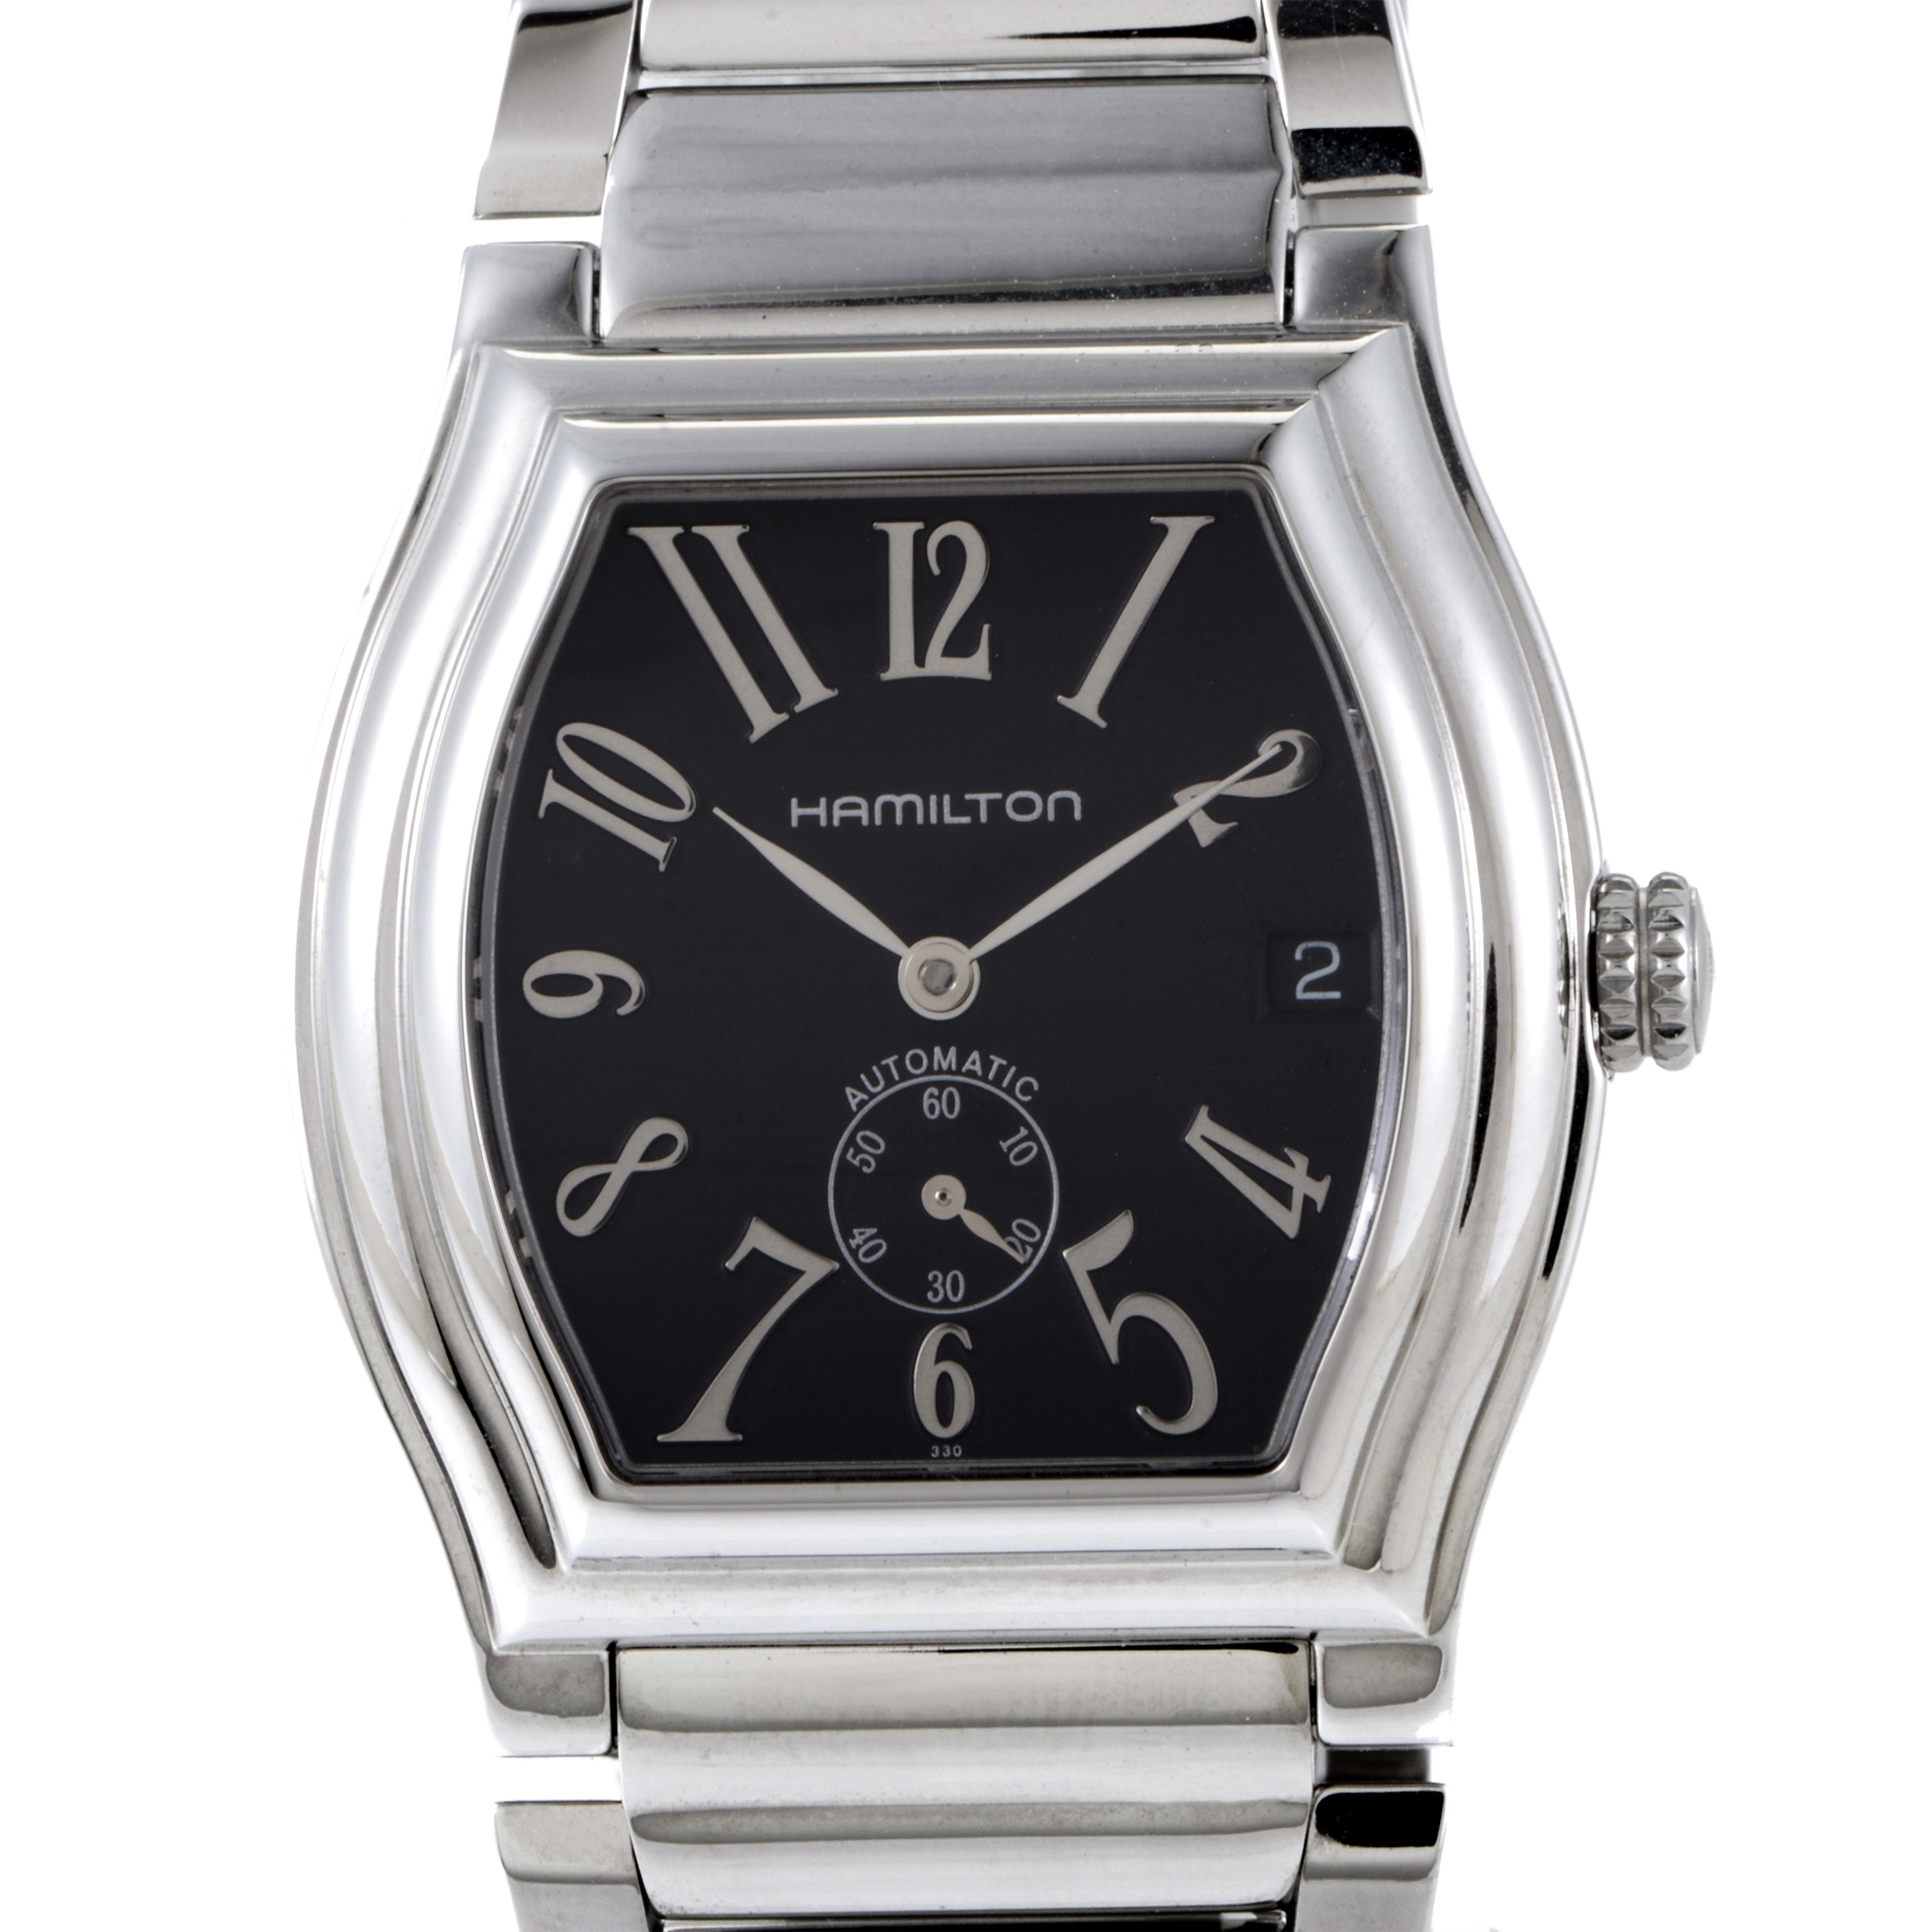 Hamilton Men's Stainless Steel Automatic Watch H27415133